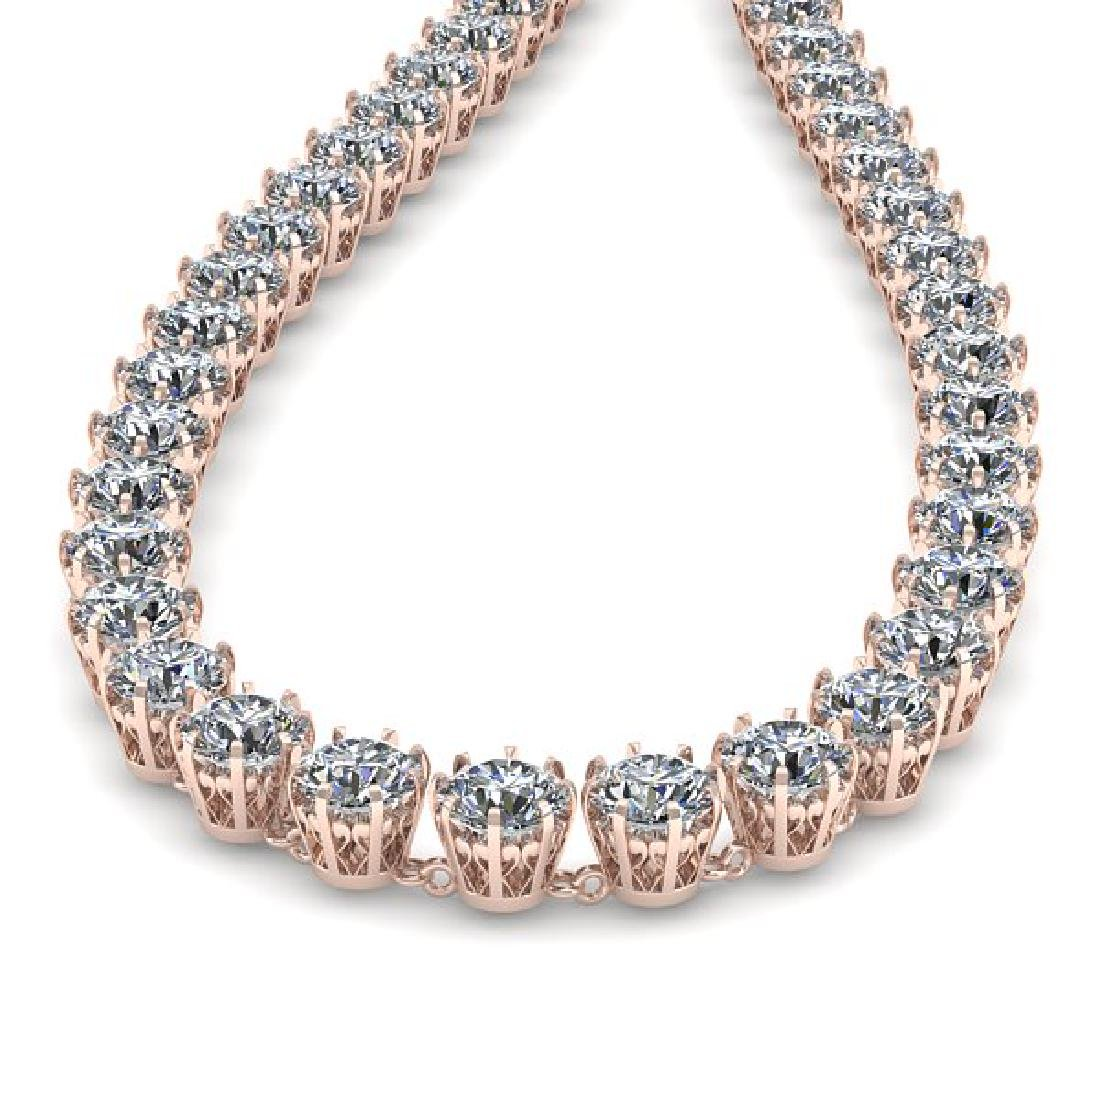 34 CTW SI Certified Diamond Necklace 14K Rose Gold - 2